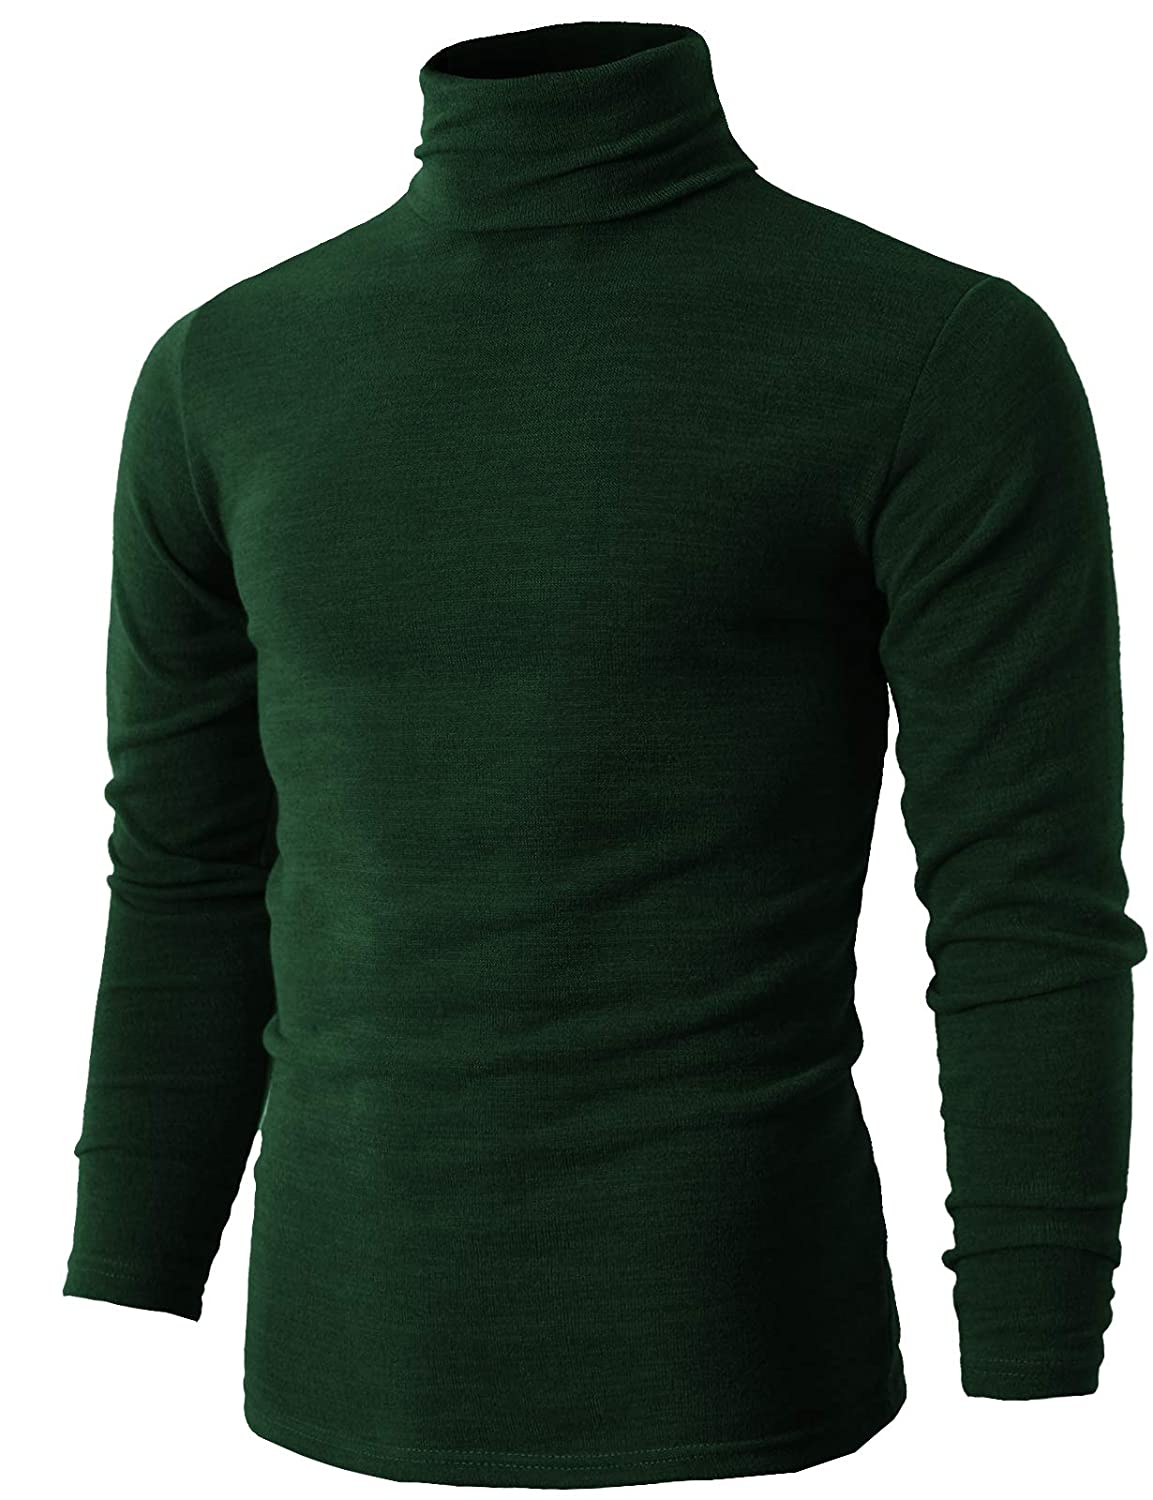 H2H Mens Casual Slim passen Pullover Sweaters Knitted Turtleneck Thermal Basic Designed